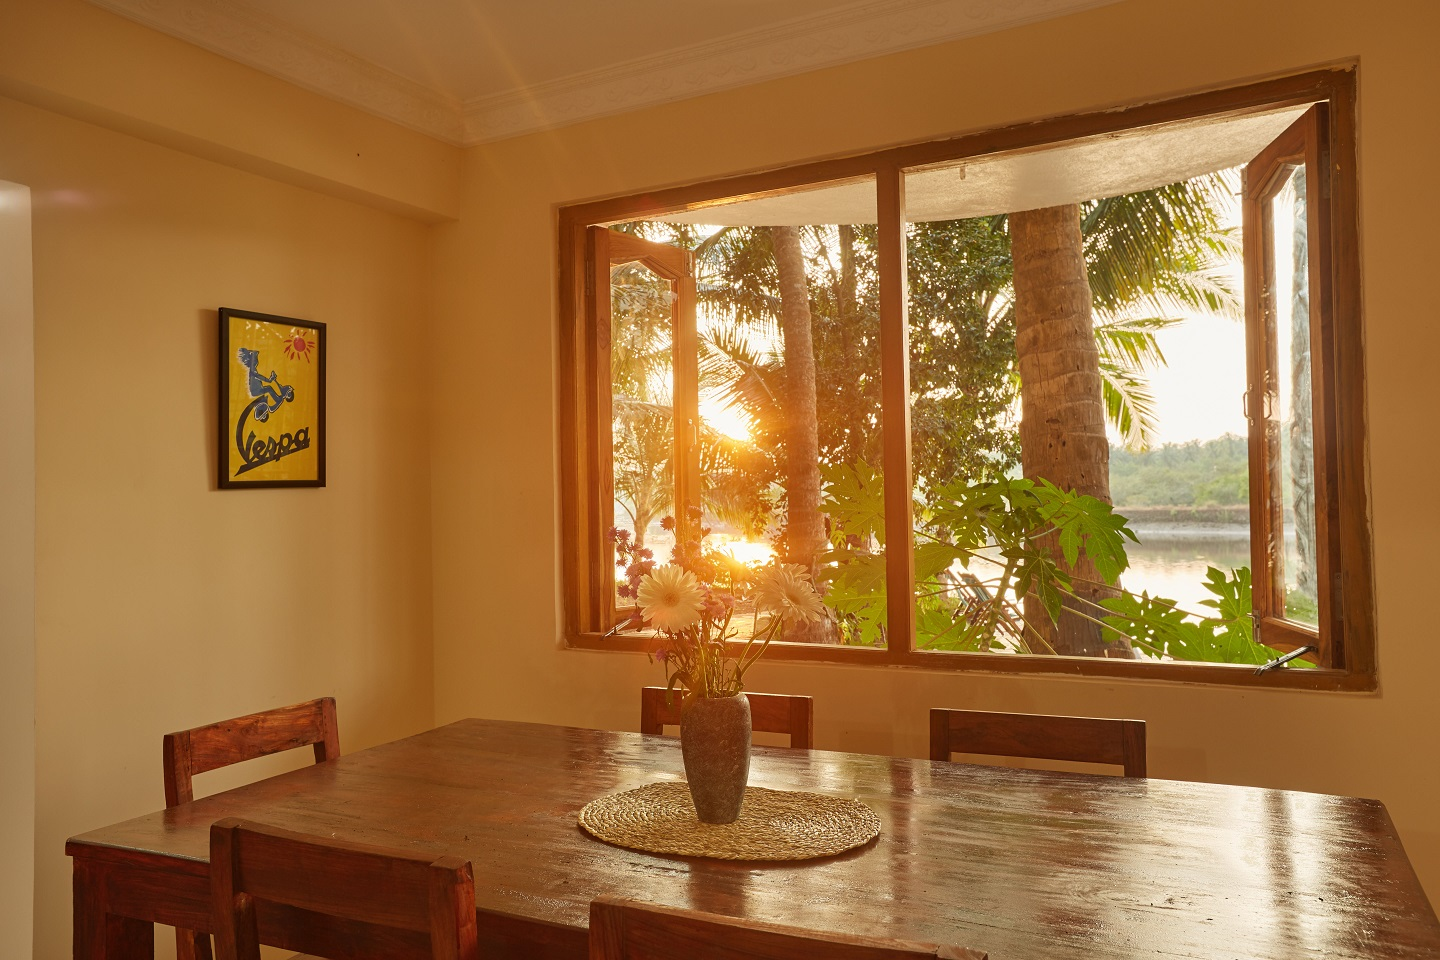 Two Bedroom Self-Service AC Apartment, Talpona, Goa dining room